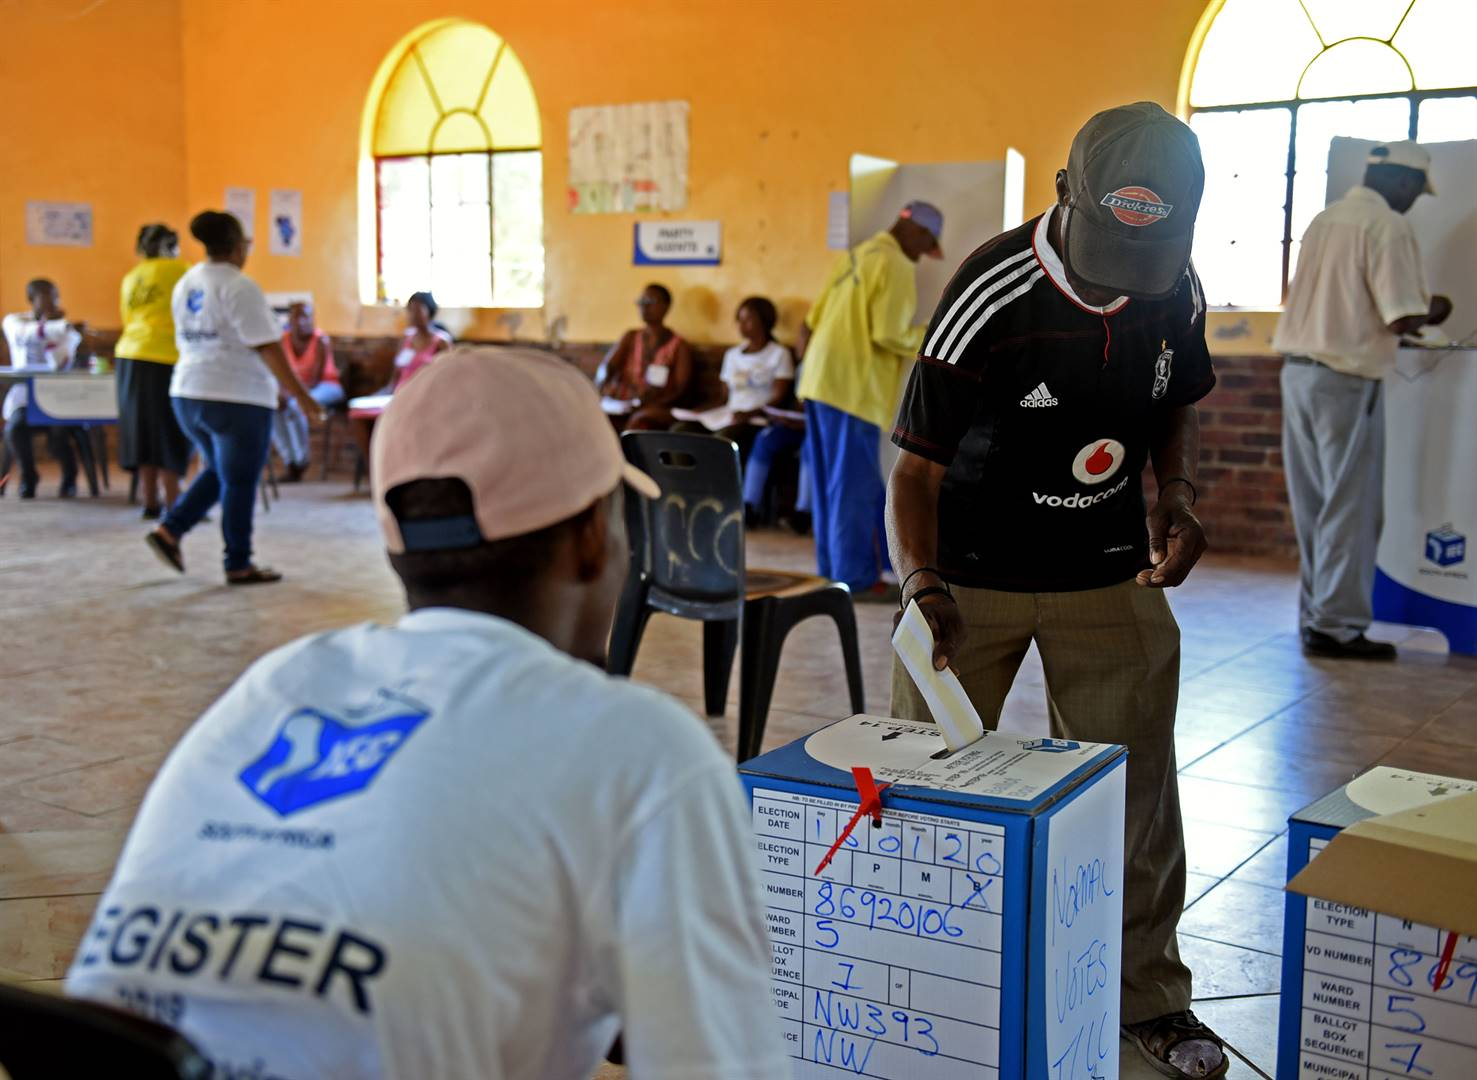 The IEC confirmed that a court order was obtained granting a further extension for by-elections to proceed by November 18 this year. Picture: Tebogo Letsie/City Press